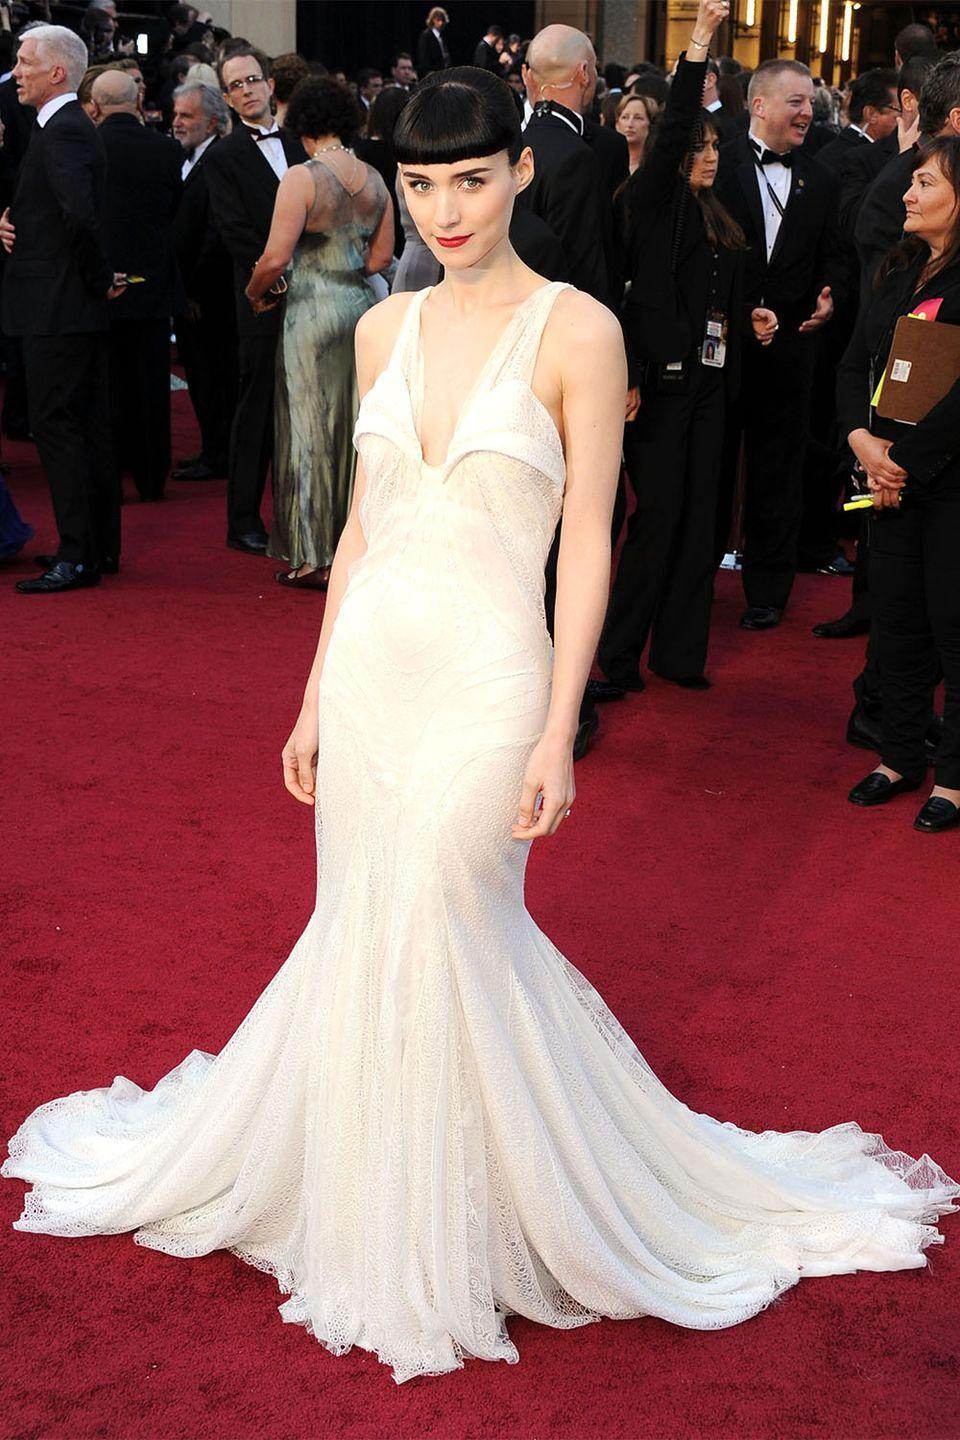 <p>Rooney Mara had a strong debut at her first Academy Awards, nominated for her role in <em>The Girl with the Dragon Tattoo, </em>the Hollywood It girl wore a one-of-a-kind Givenchy Haute Couture gown. </p>